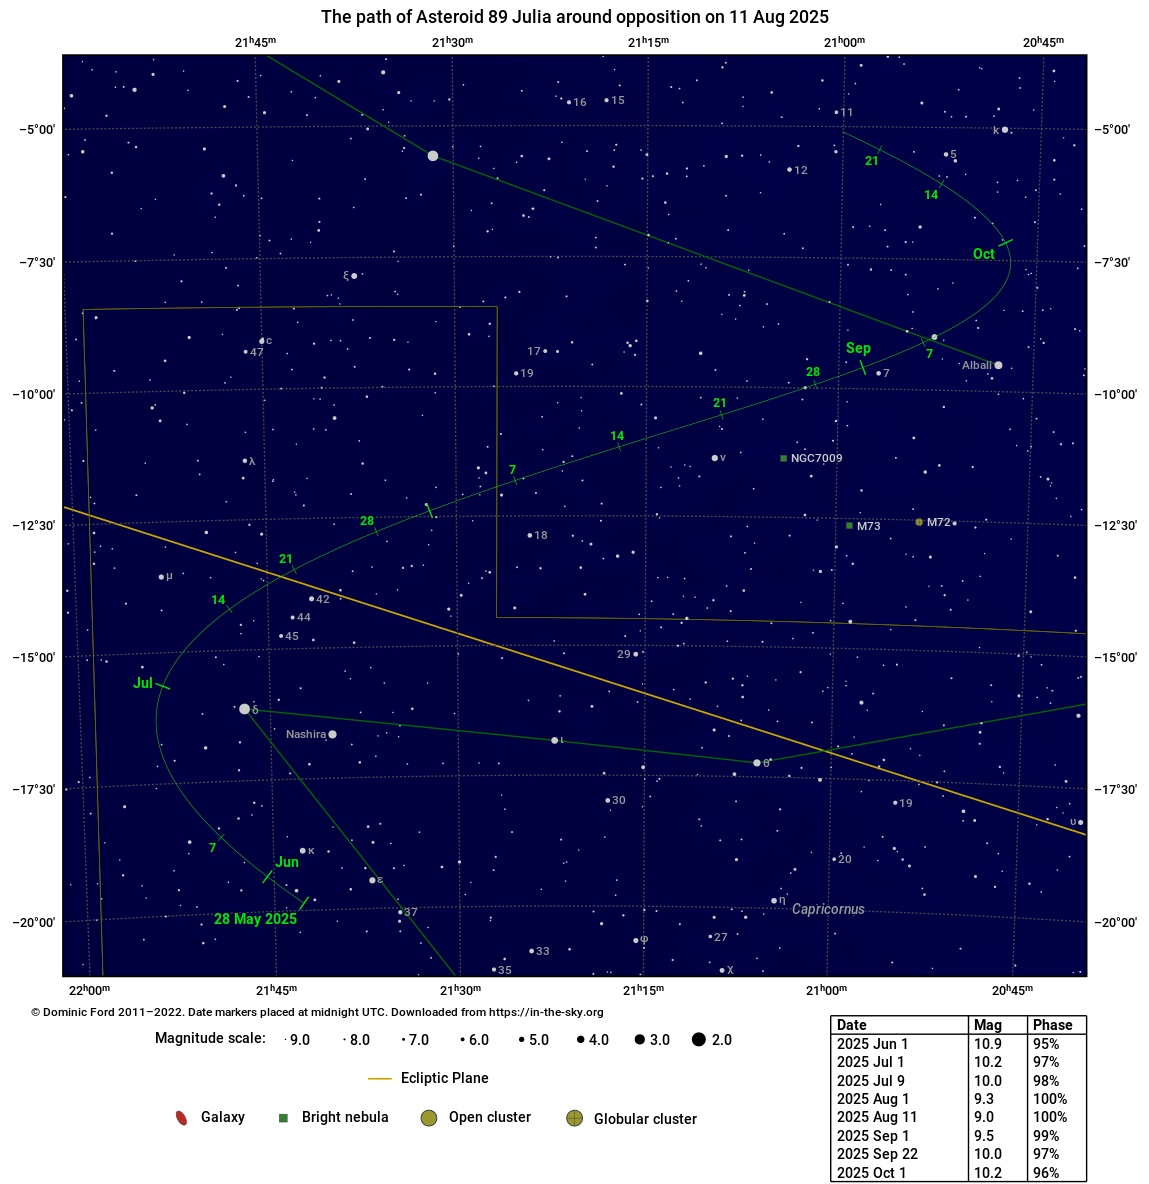 The path traced across the sky by 89 Julia around the time of opposition